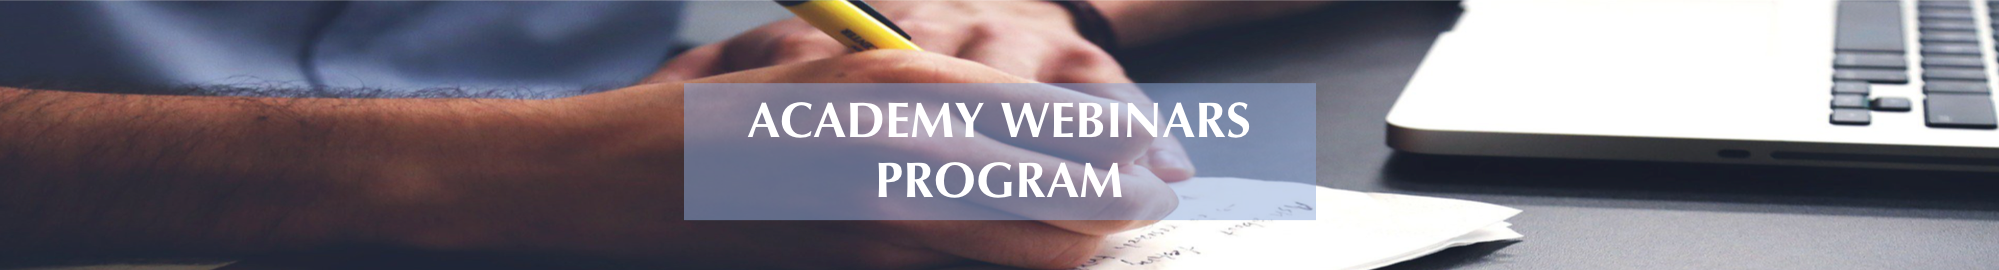 academy webinars program